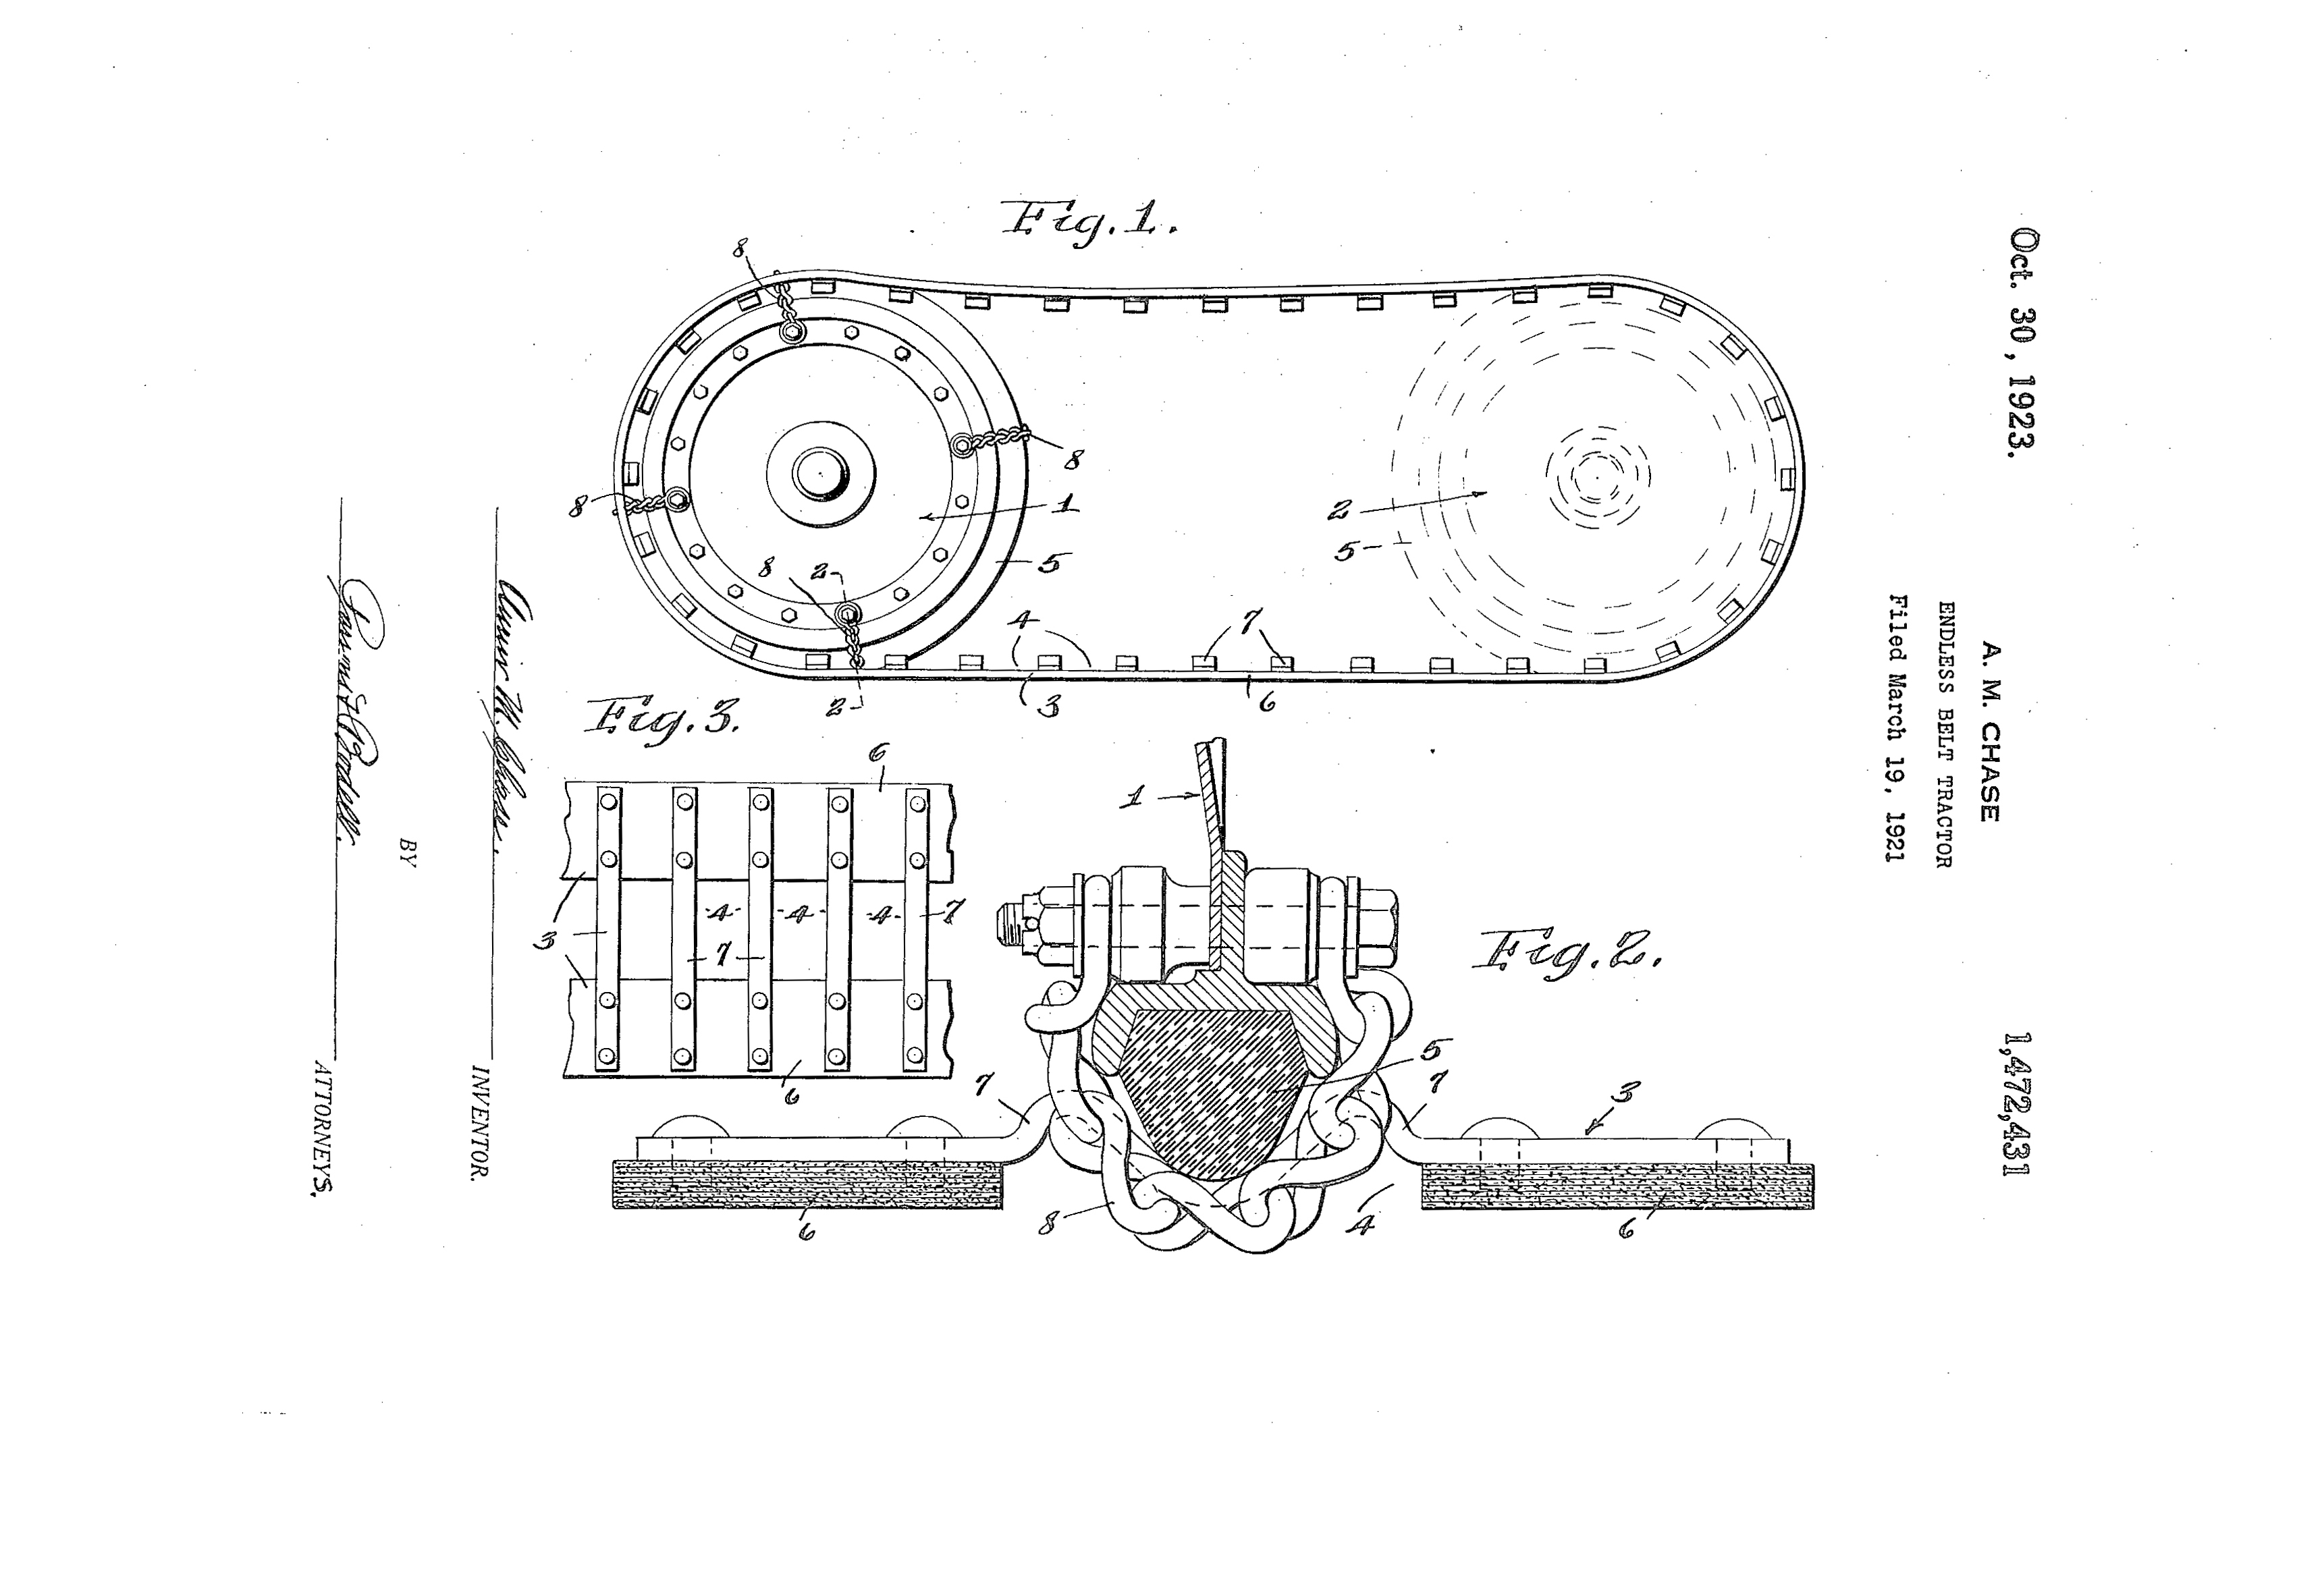 Endless Belt Patent 2